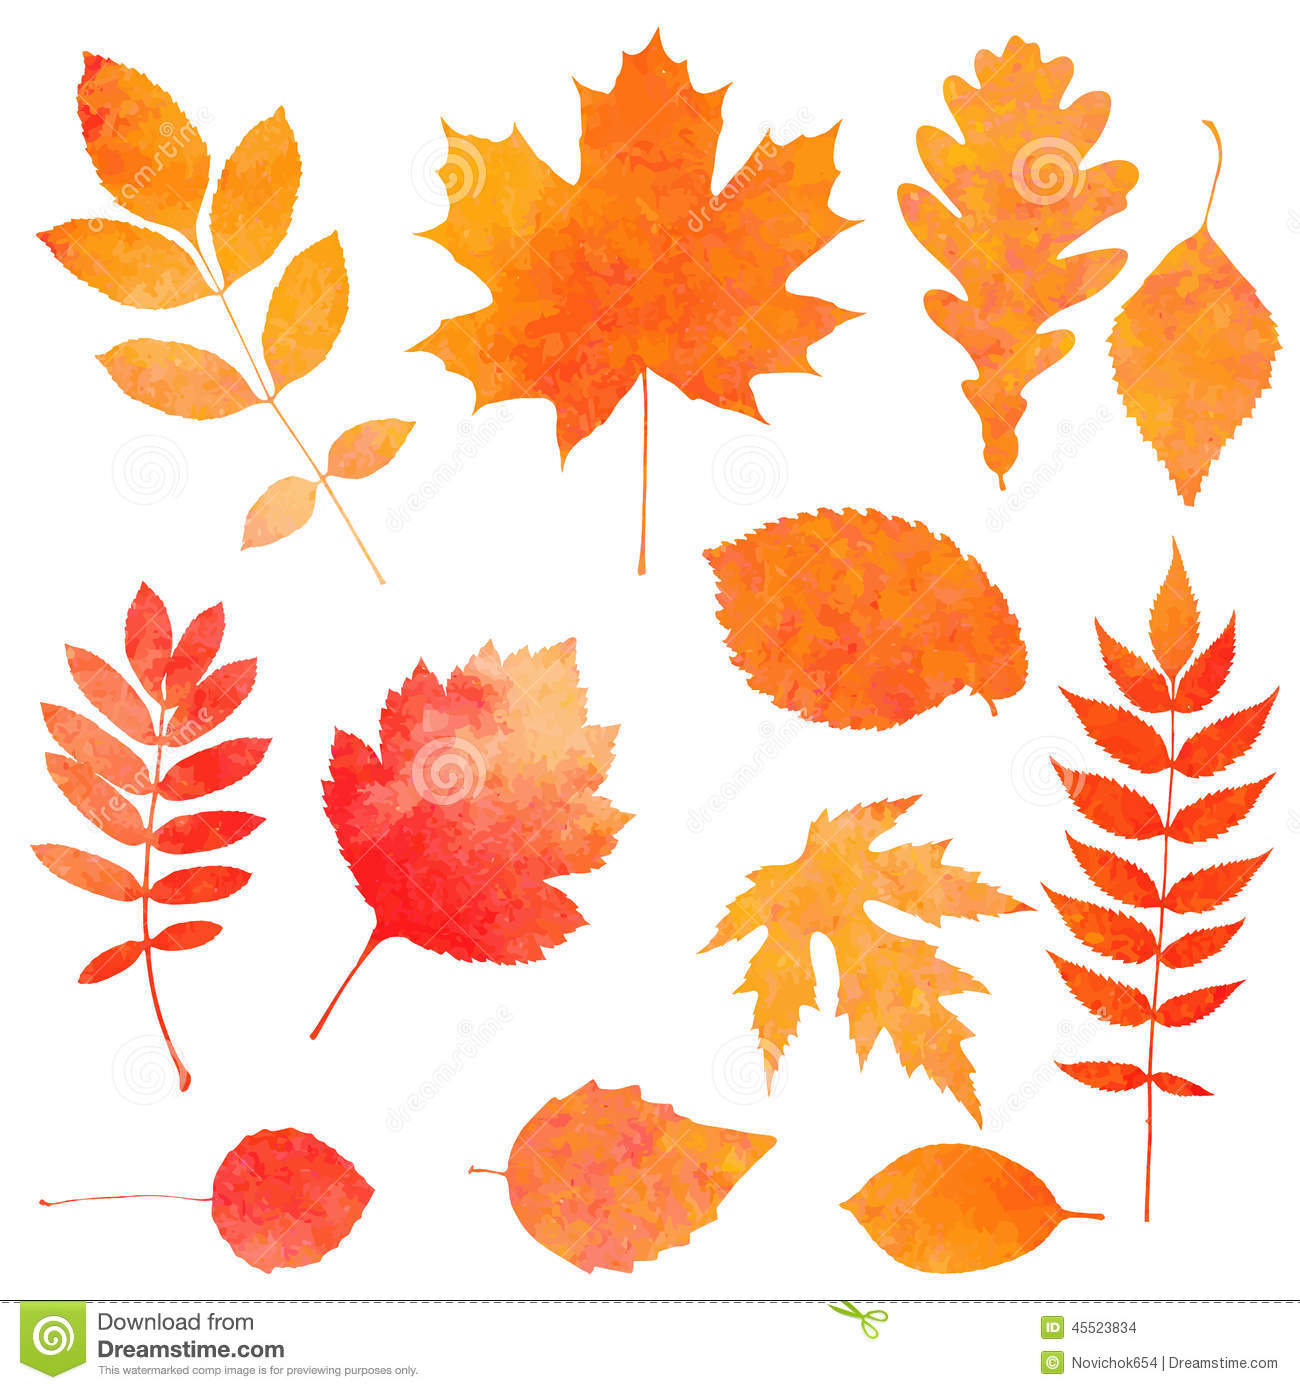 Watercolor collection of beautiful orange autumn leaves